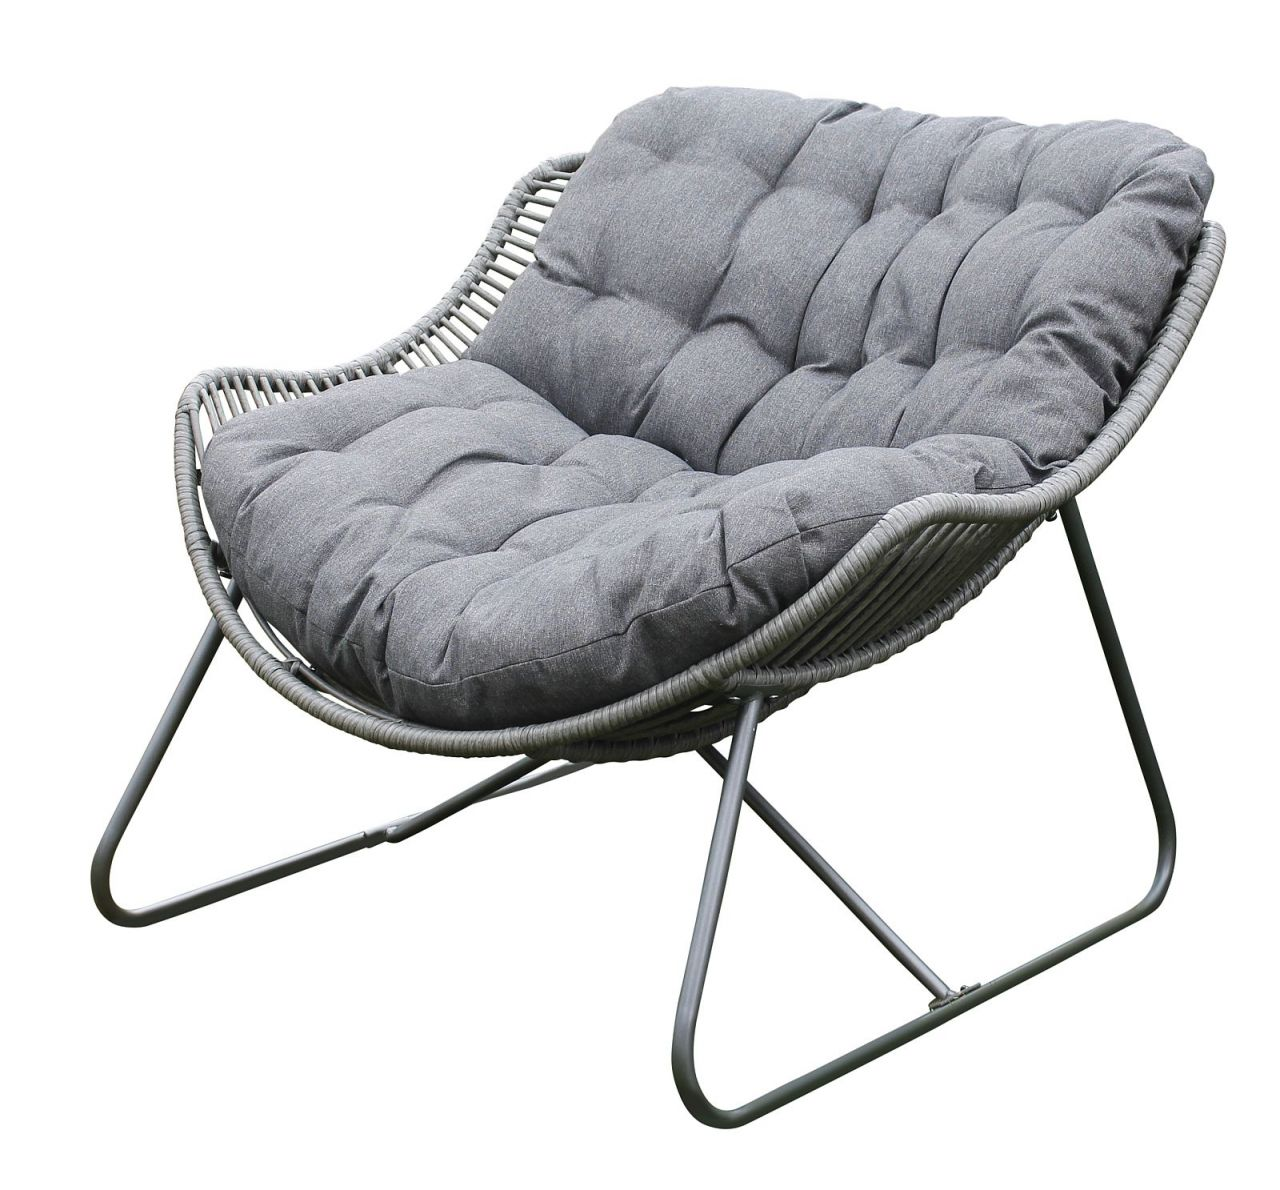 Lounge Sessel Indoor Lounge Sessel Inkl Xl Kissen Anthrazit Gartensessel B 96 Cm Indoor Outdoor Lc Modena 1